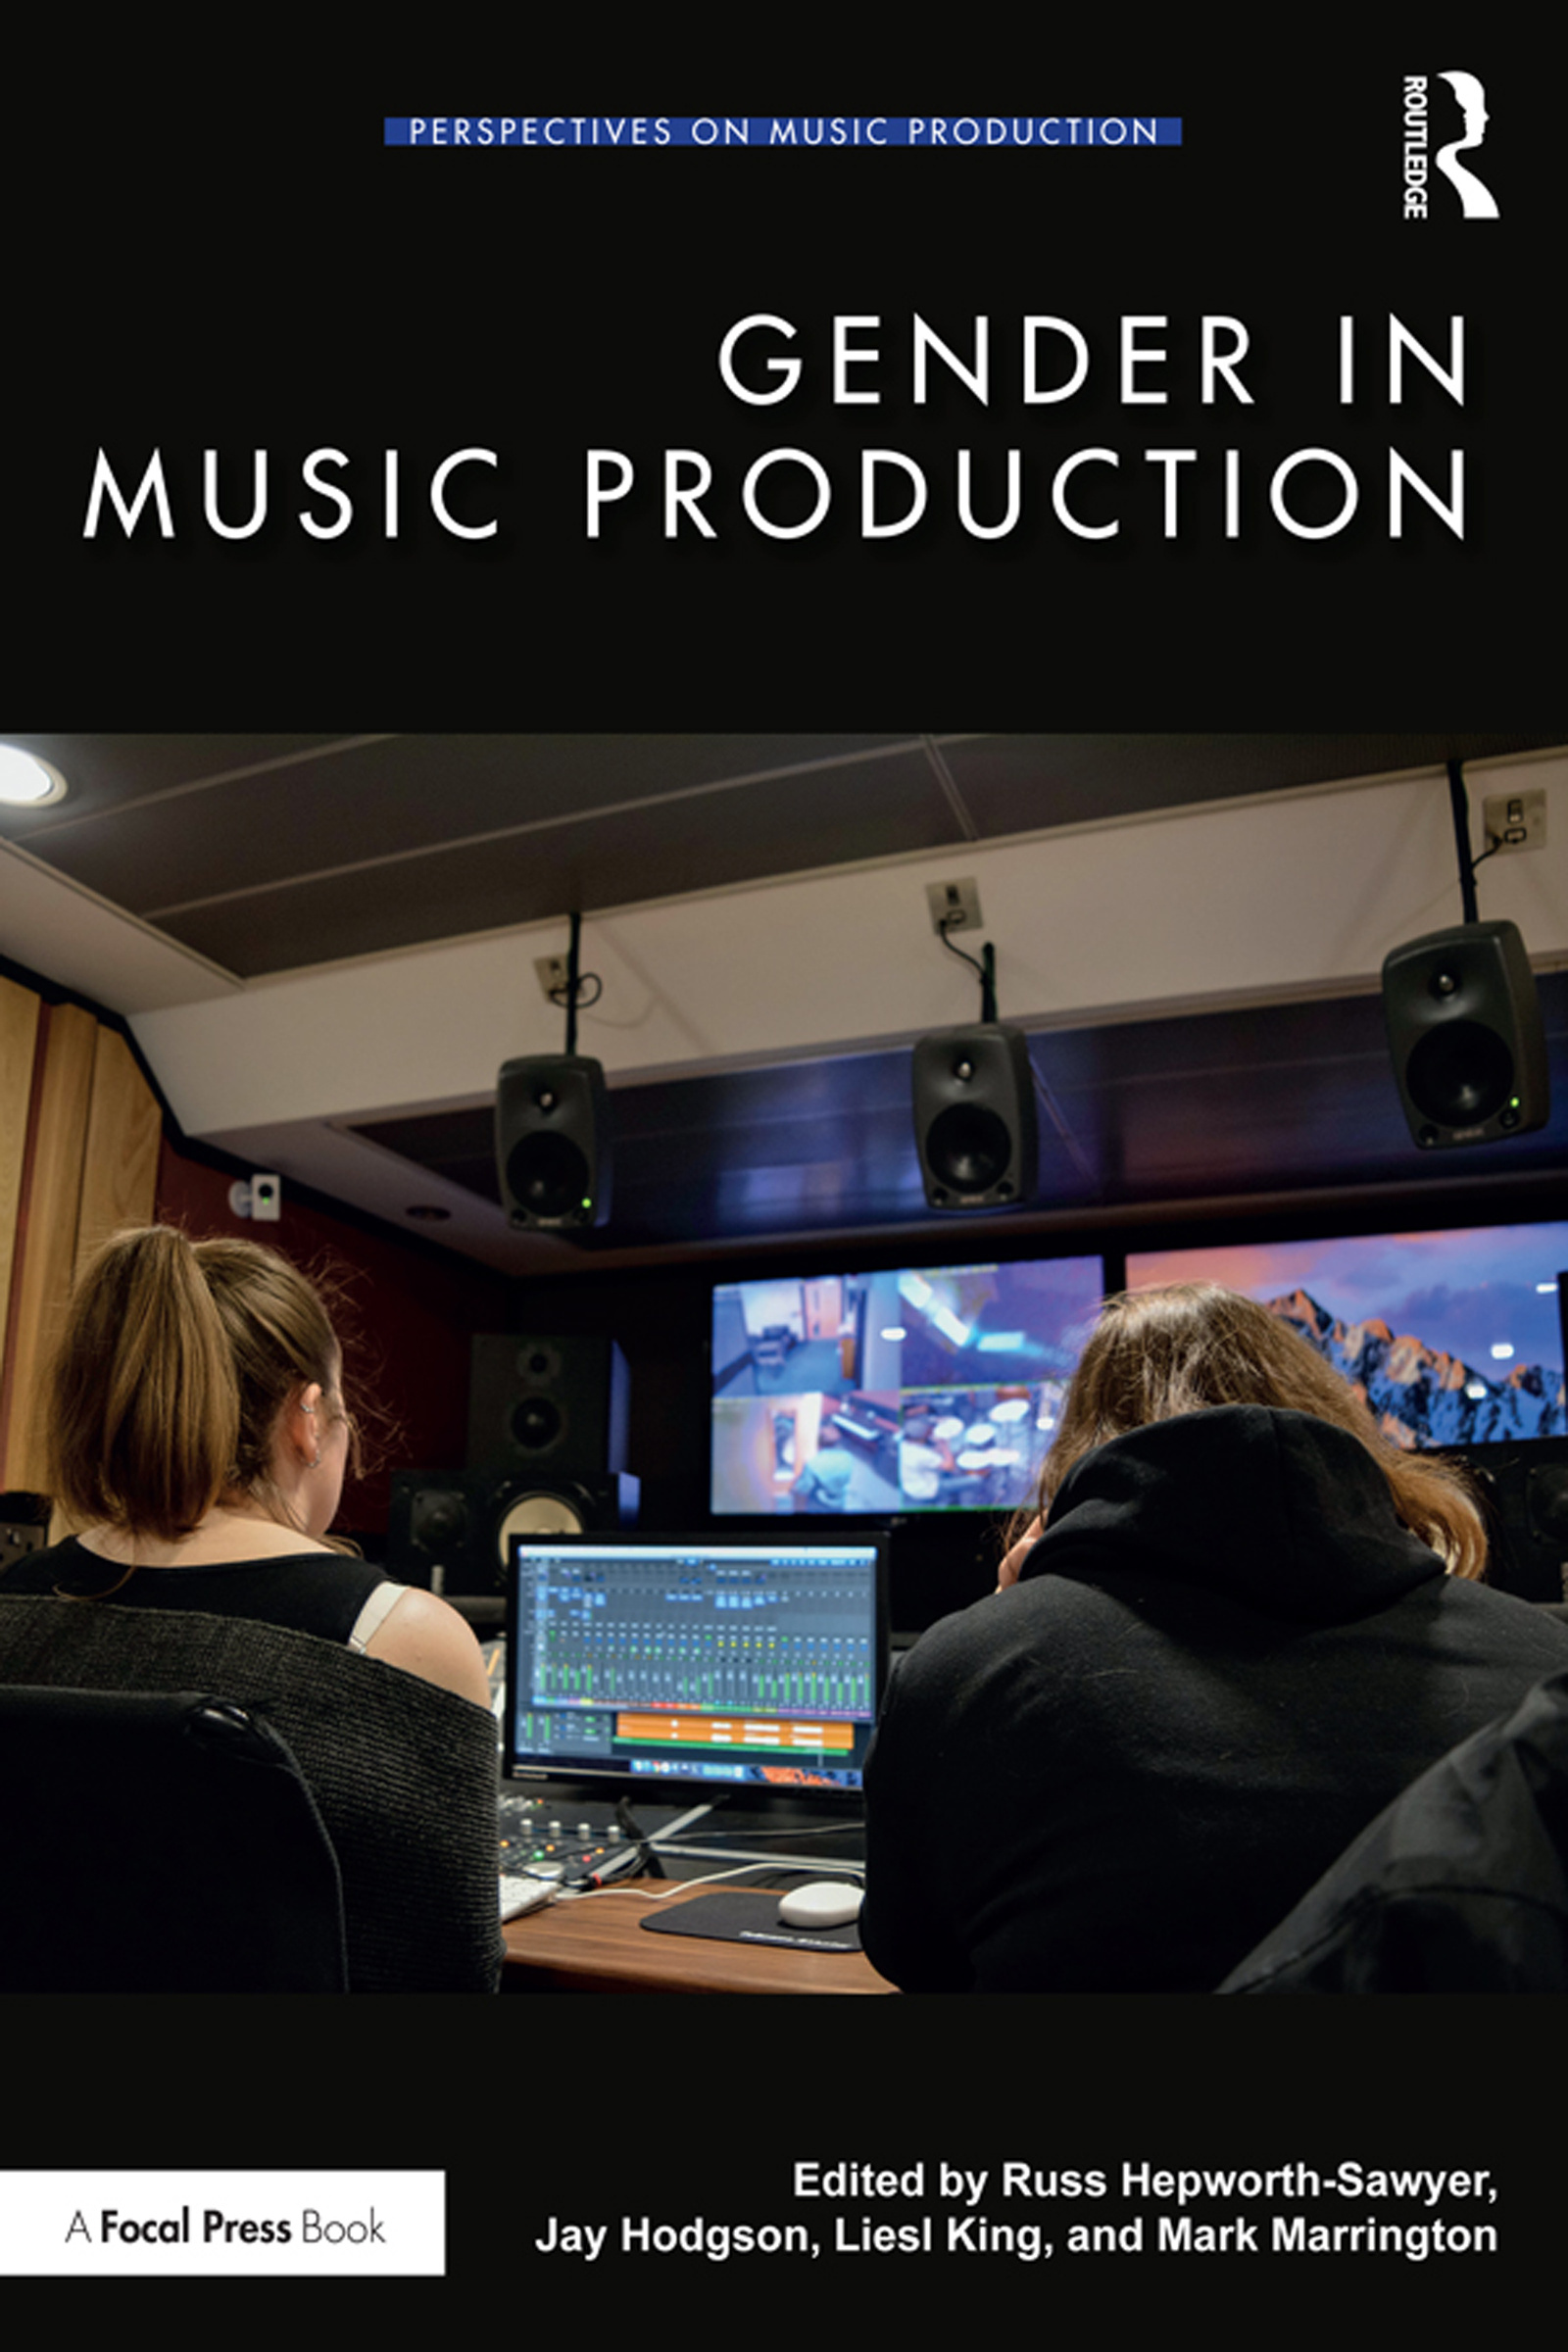 Addressing Gender Equality in Music Production